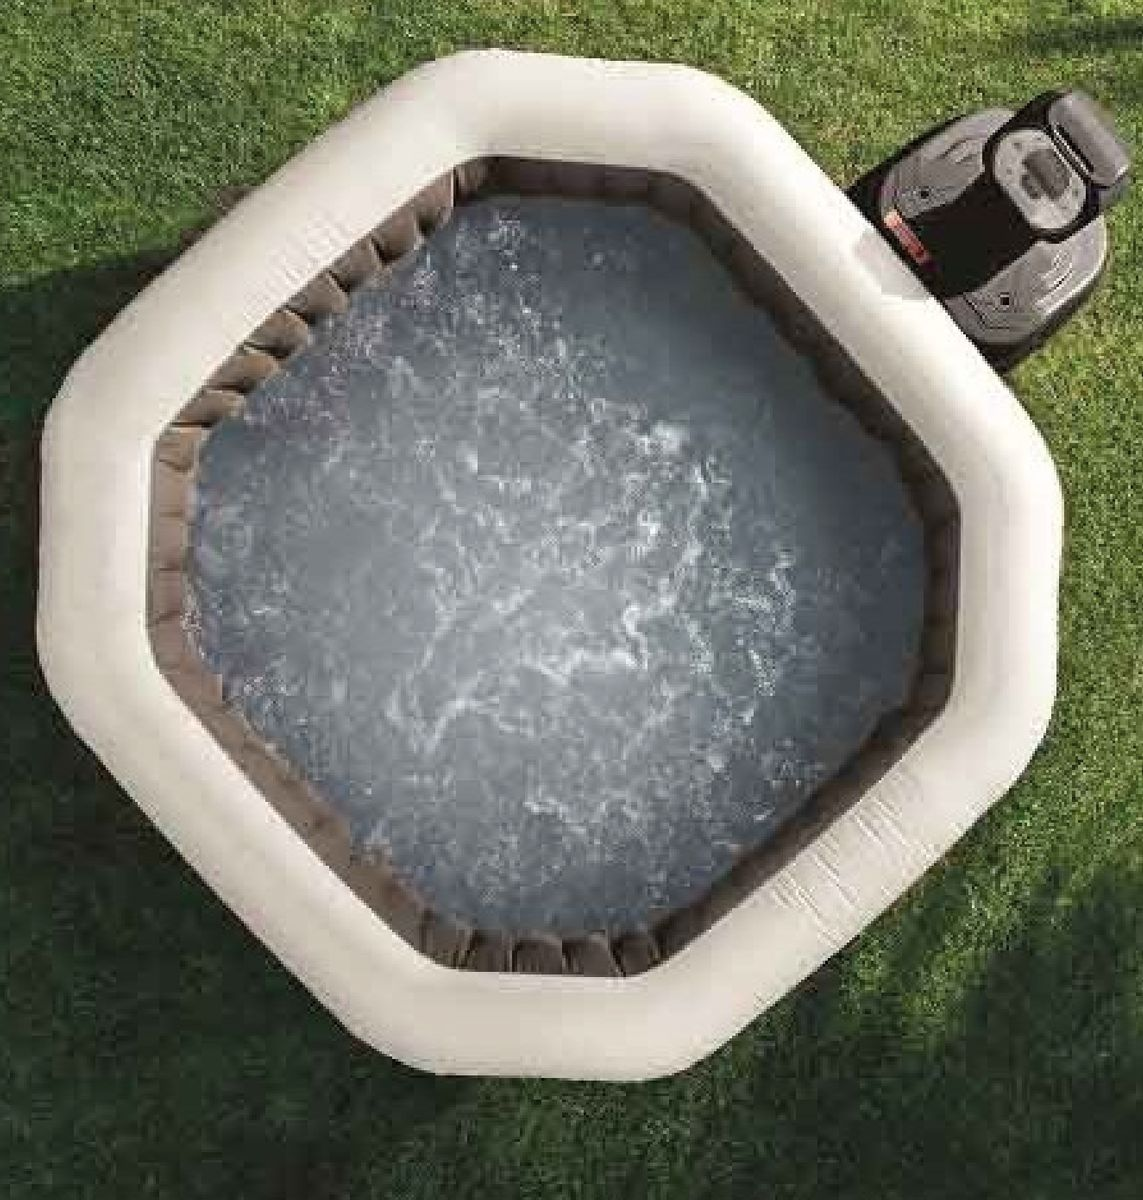 SPA GONFLABLE INTEX PURESPA OCTO 4pl. BULLES+JETS NOIR